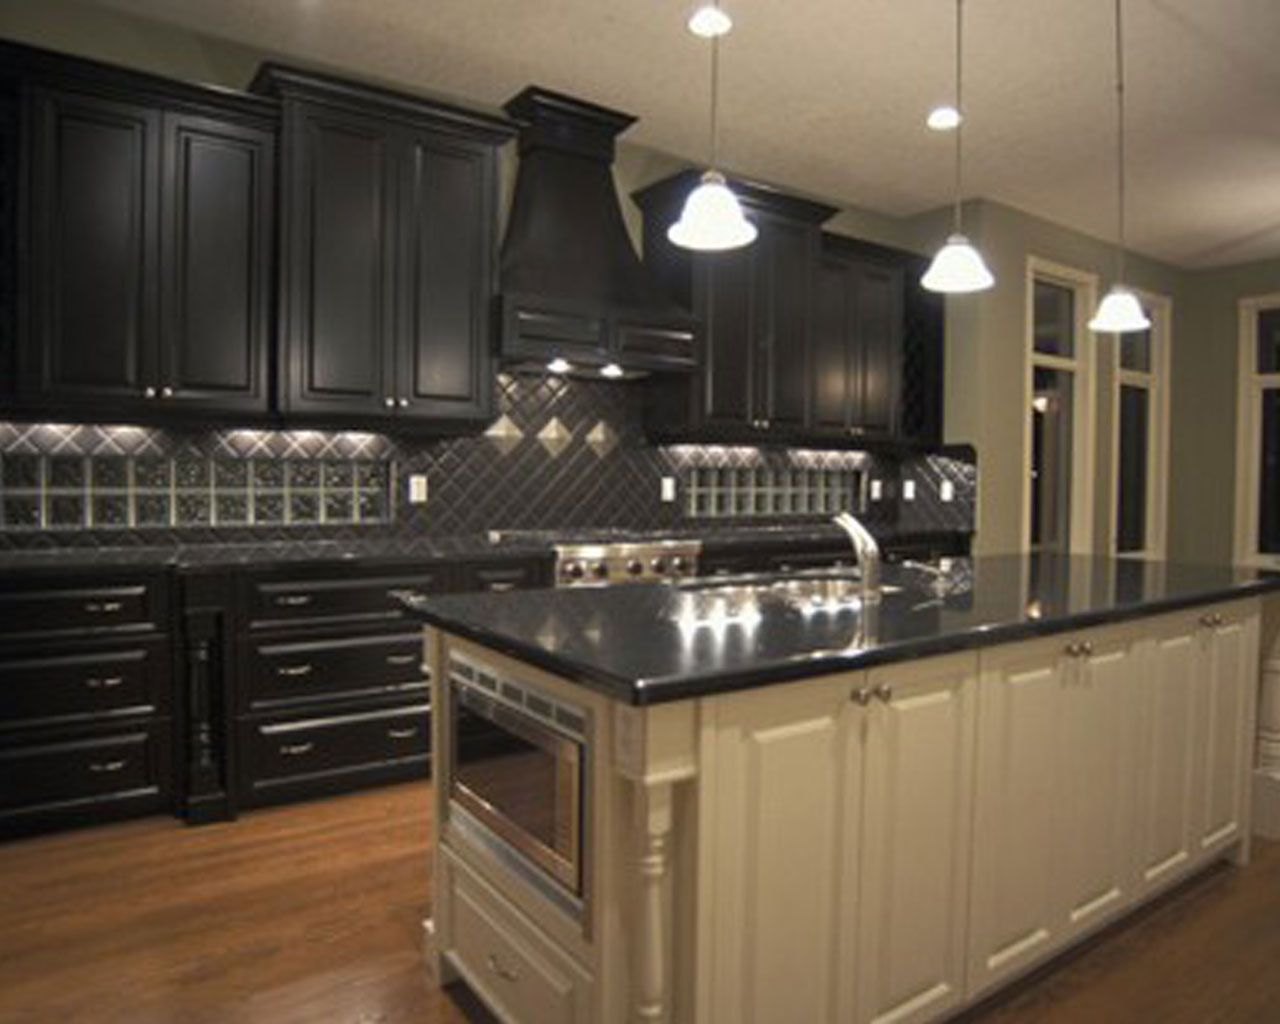 finest design black kitchen cabinets wallpapers - Kitchen Designs Dark Cabinets